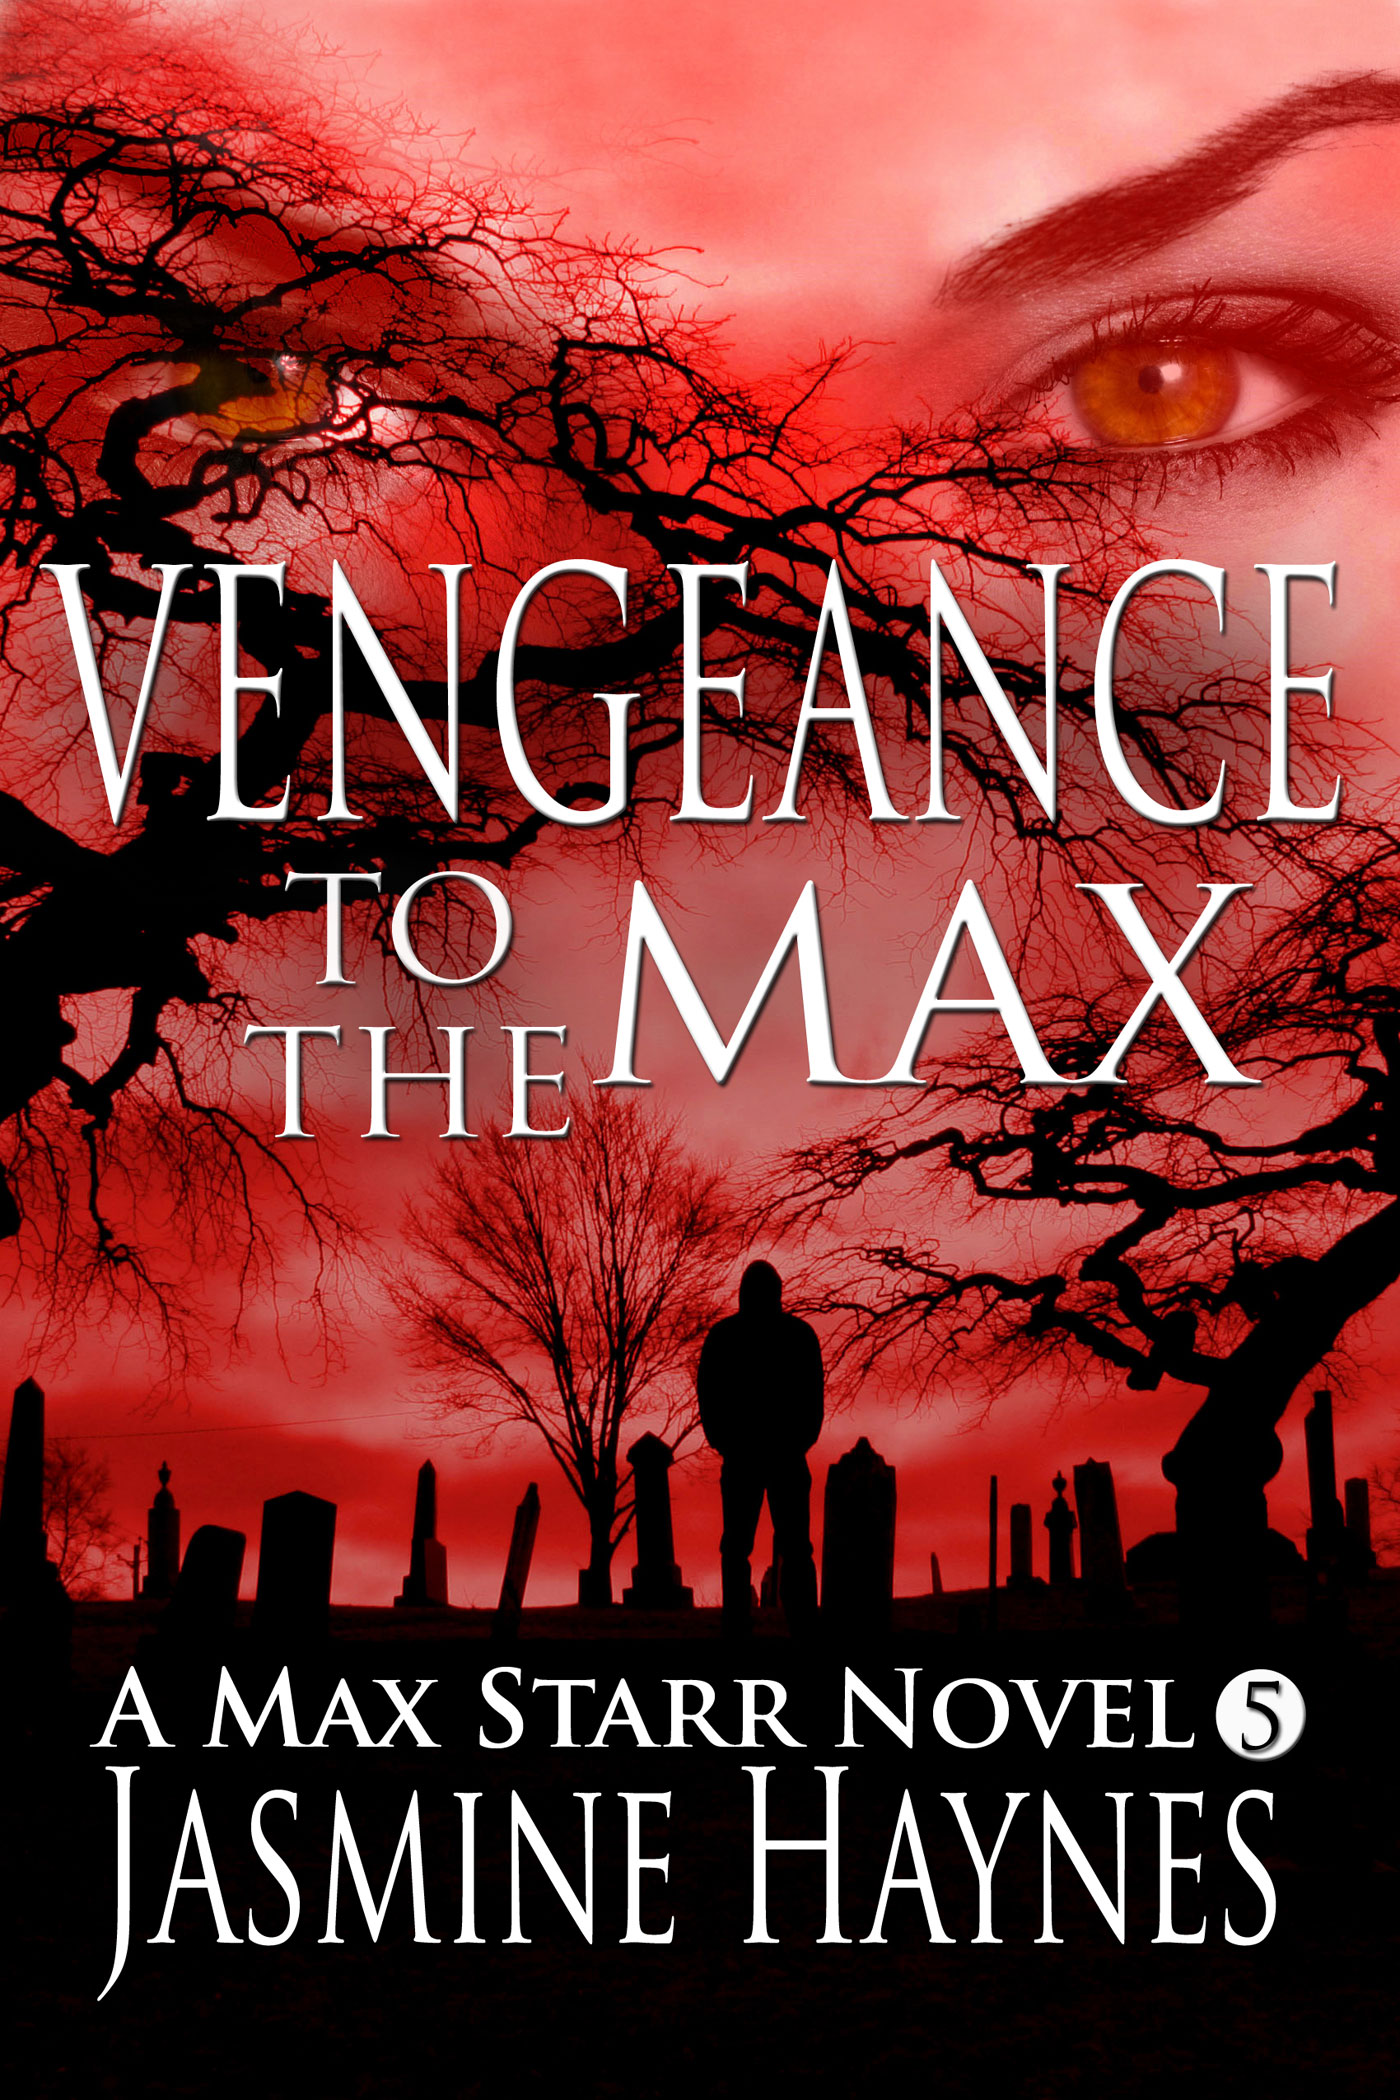 Jasmine Haynes - Vengeance to the Max (Book 5, Max Starr Series)